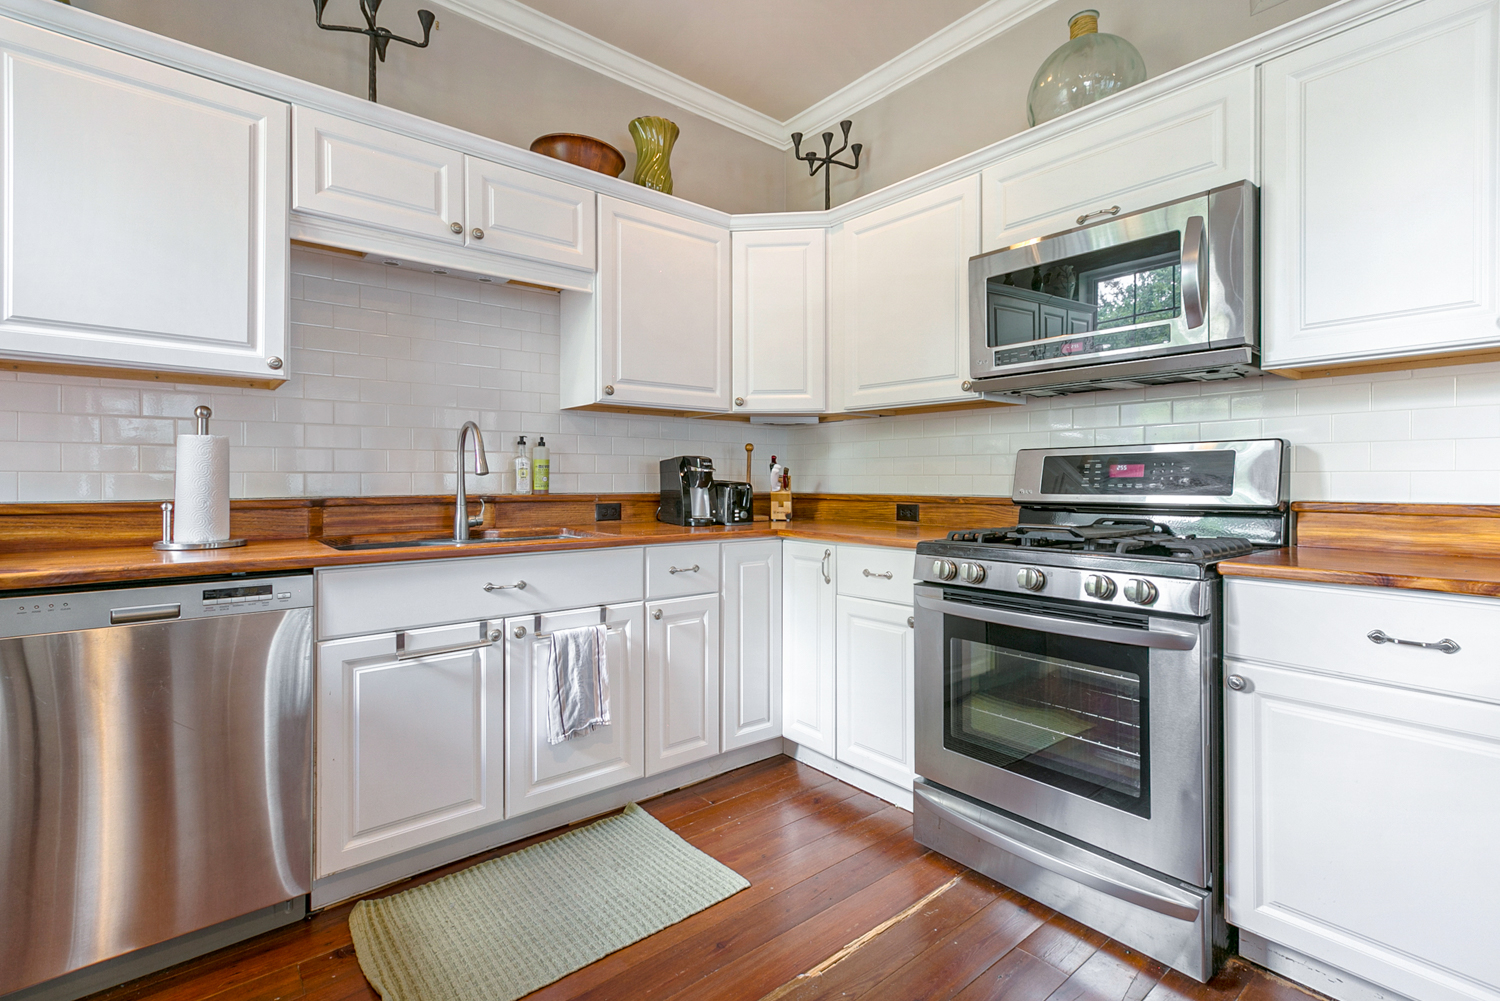 Garden District, Apartment, 2 beds, 1.0 baths, $3000 per month New Orleans Rental - devie image_8